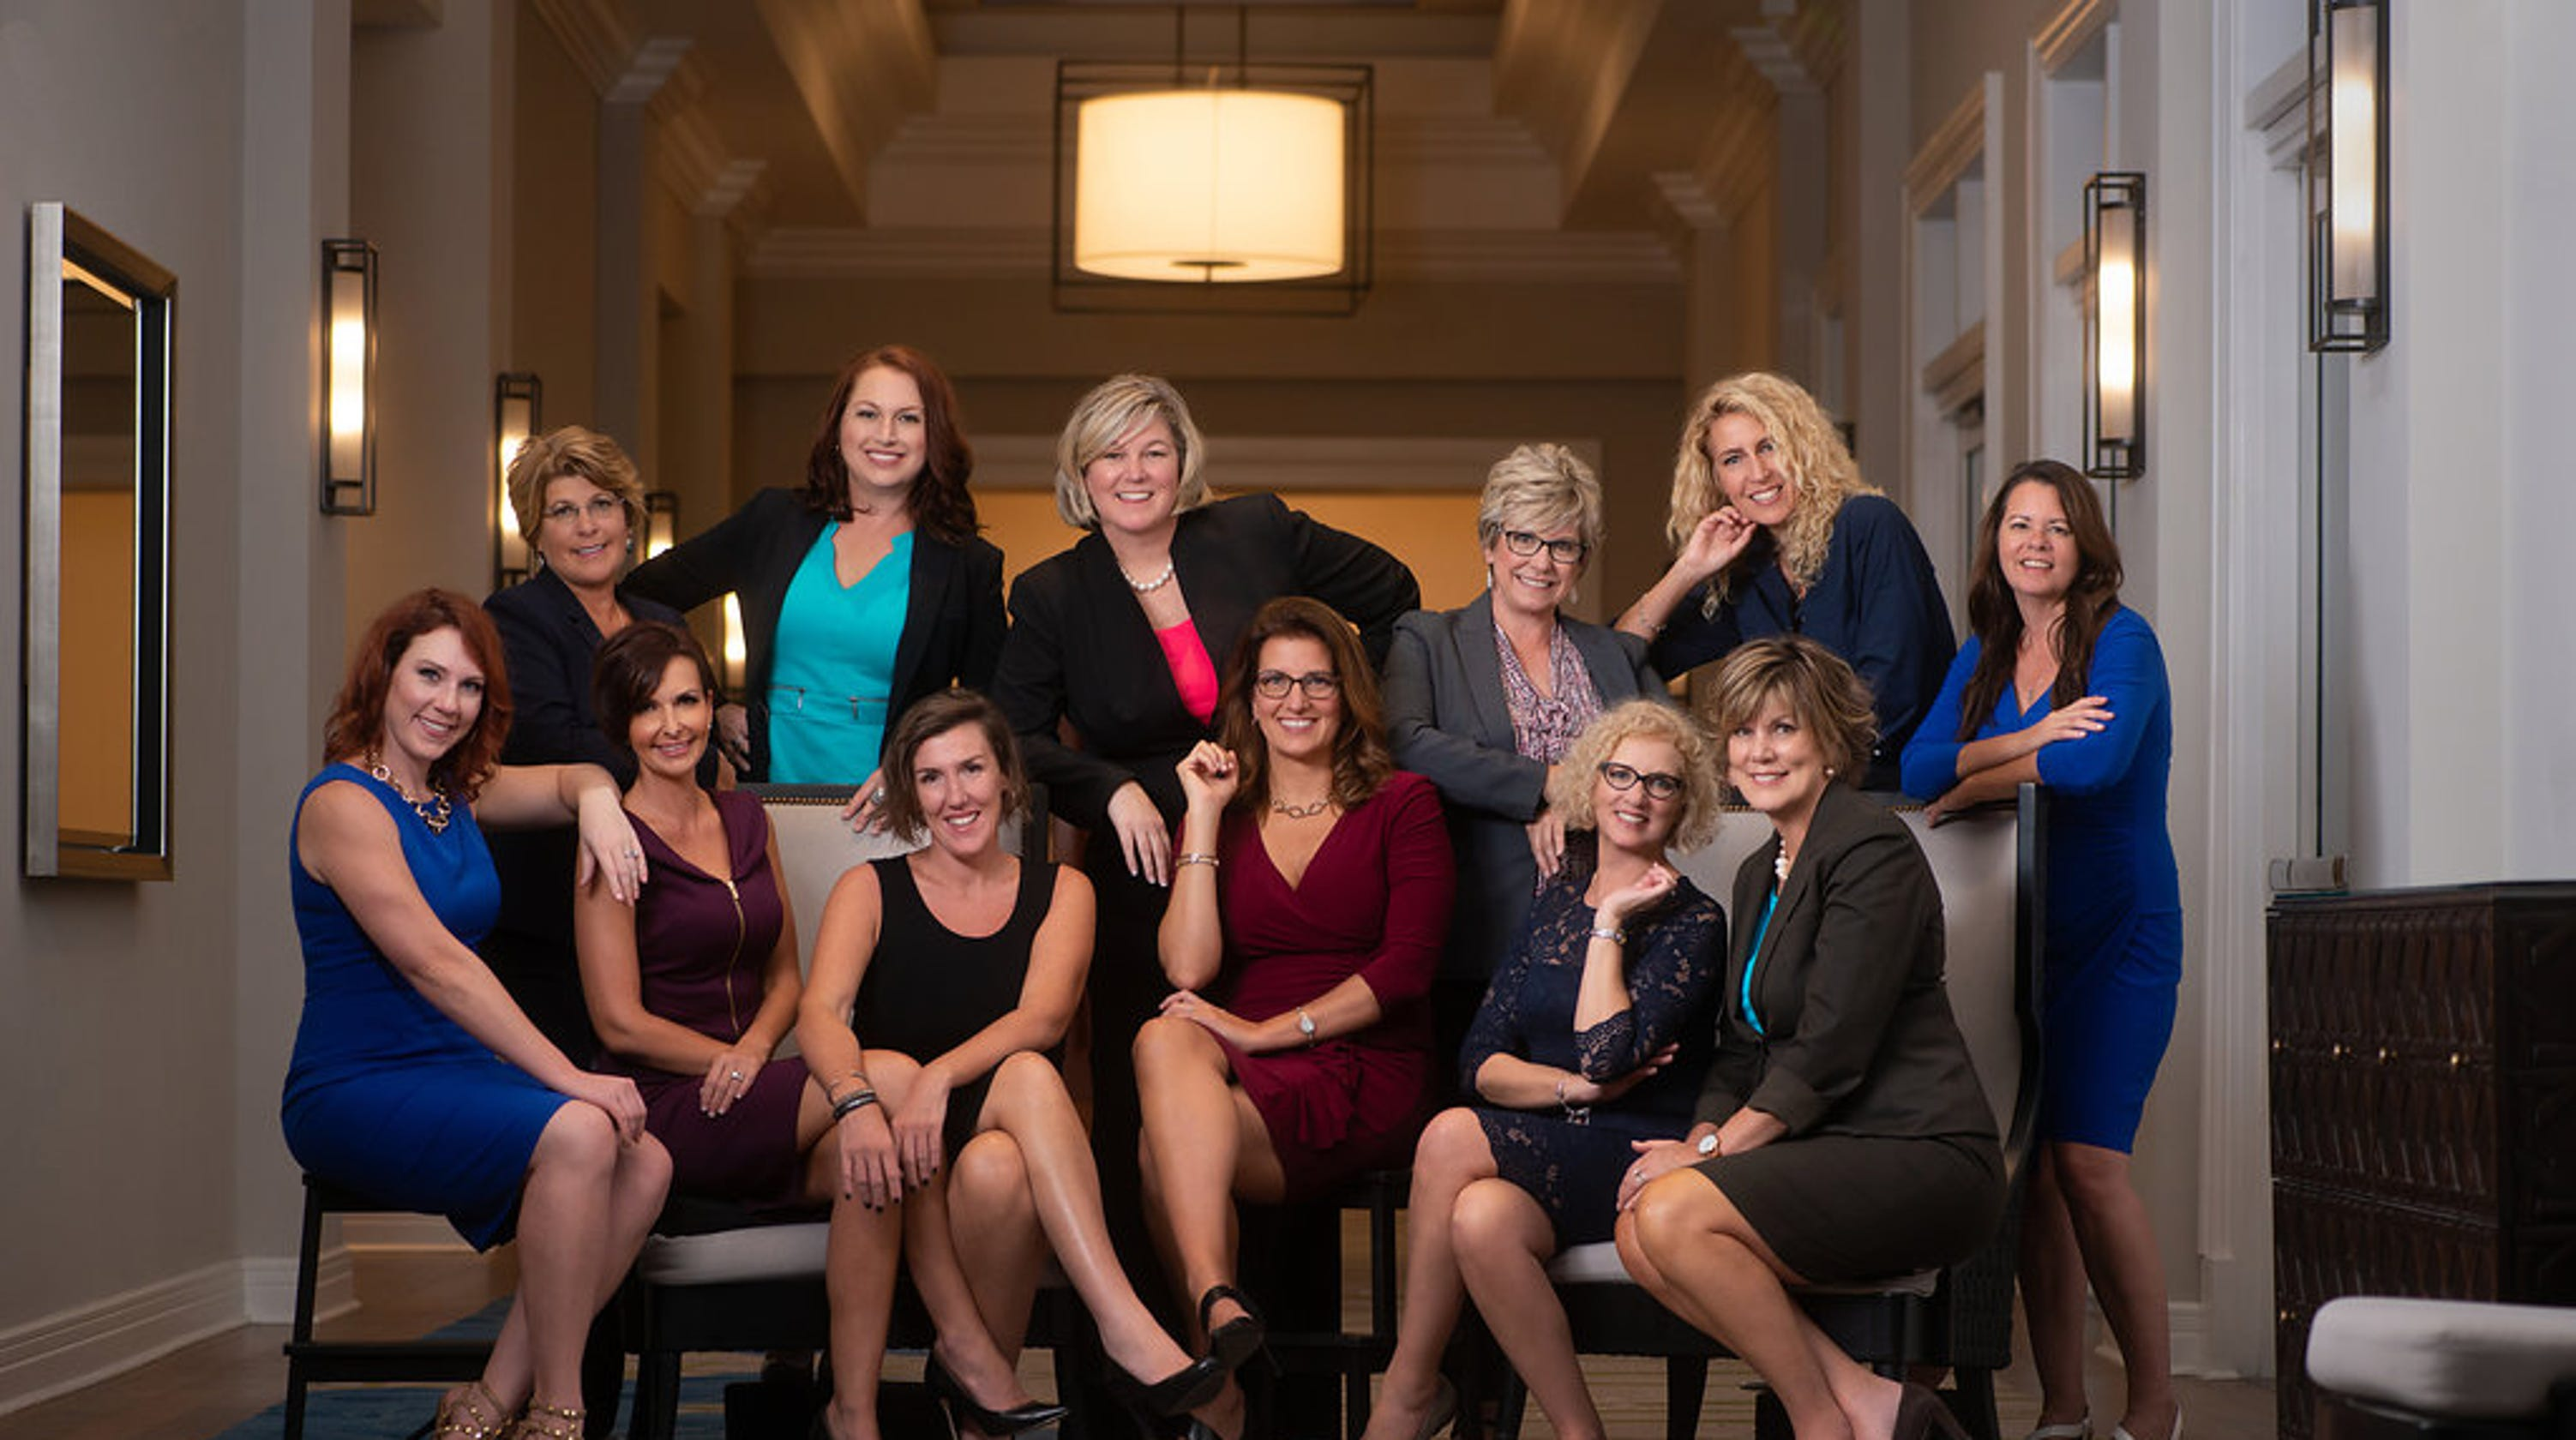 Financial Companies In Naples Area Try To Add More Women As Advisers